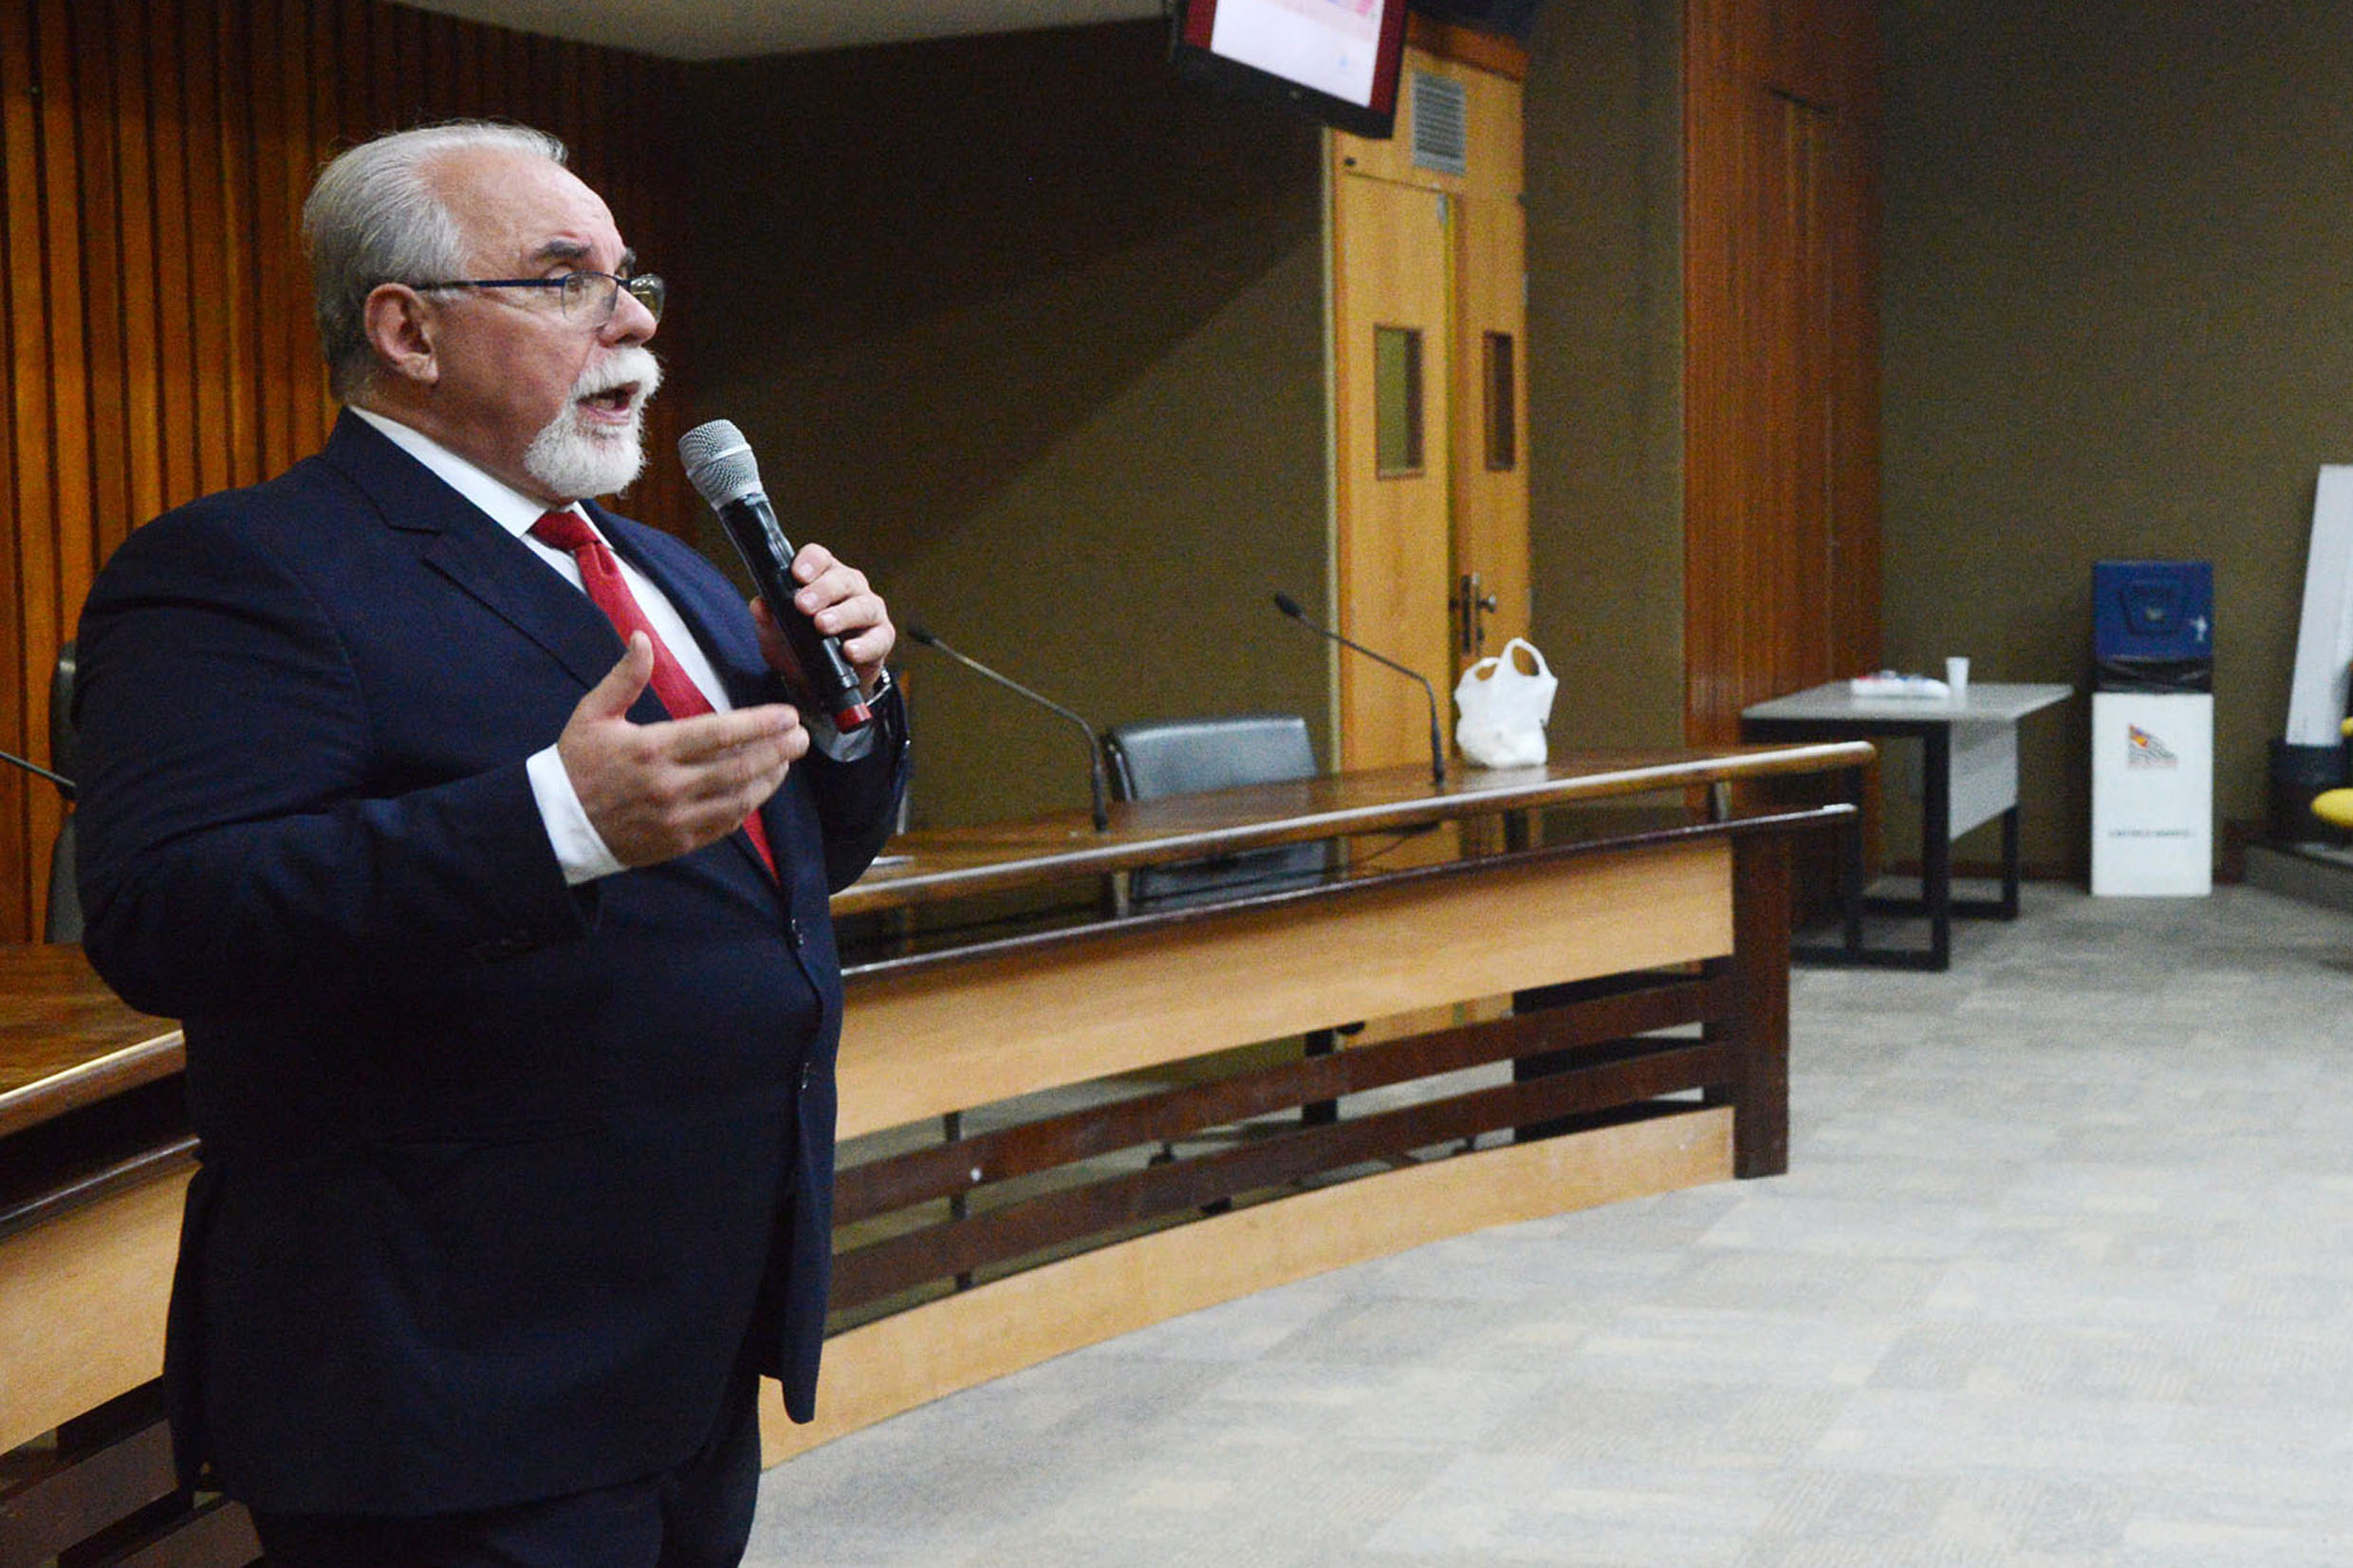 Vaz Juliano <a style='float:right' href='https://www3.al.sp.gov.br/repositorio/noticia/N-05-2018/fg222803.jpg' target=_blank><img src='/_img/material-file-download-white.png' width='14px' alt='Clique para baixar a imagem'></a>